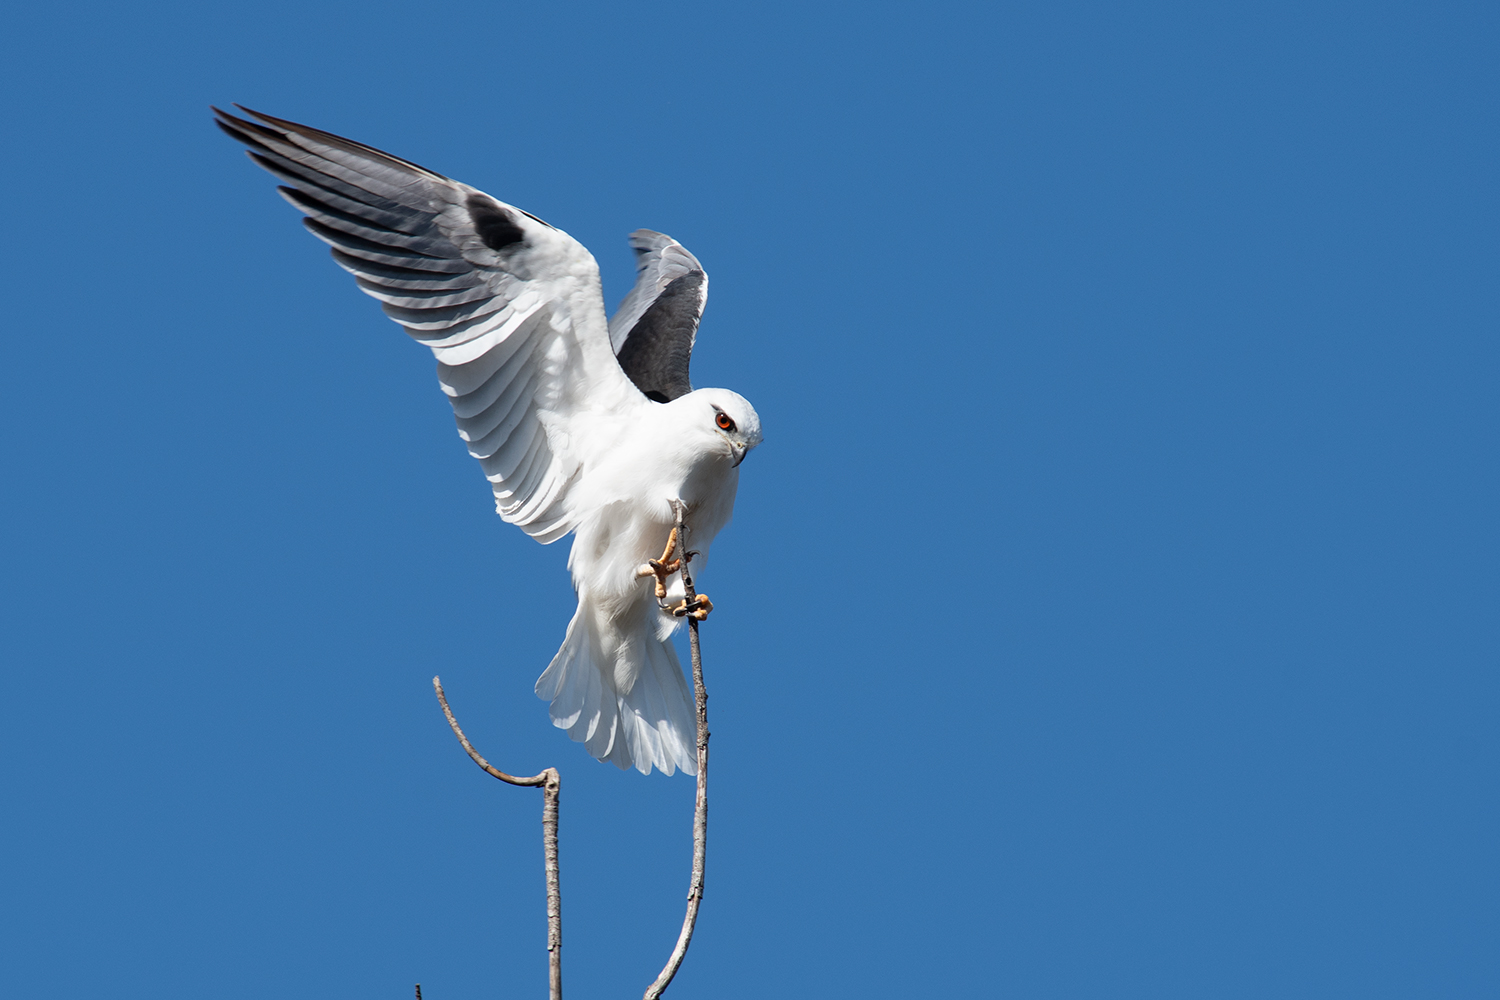 Black-shouldered kite balancing to stay on its perch